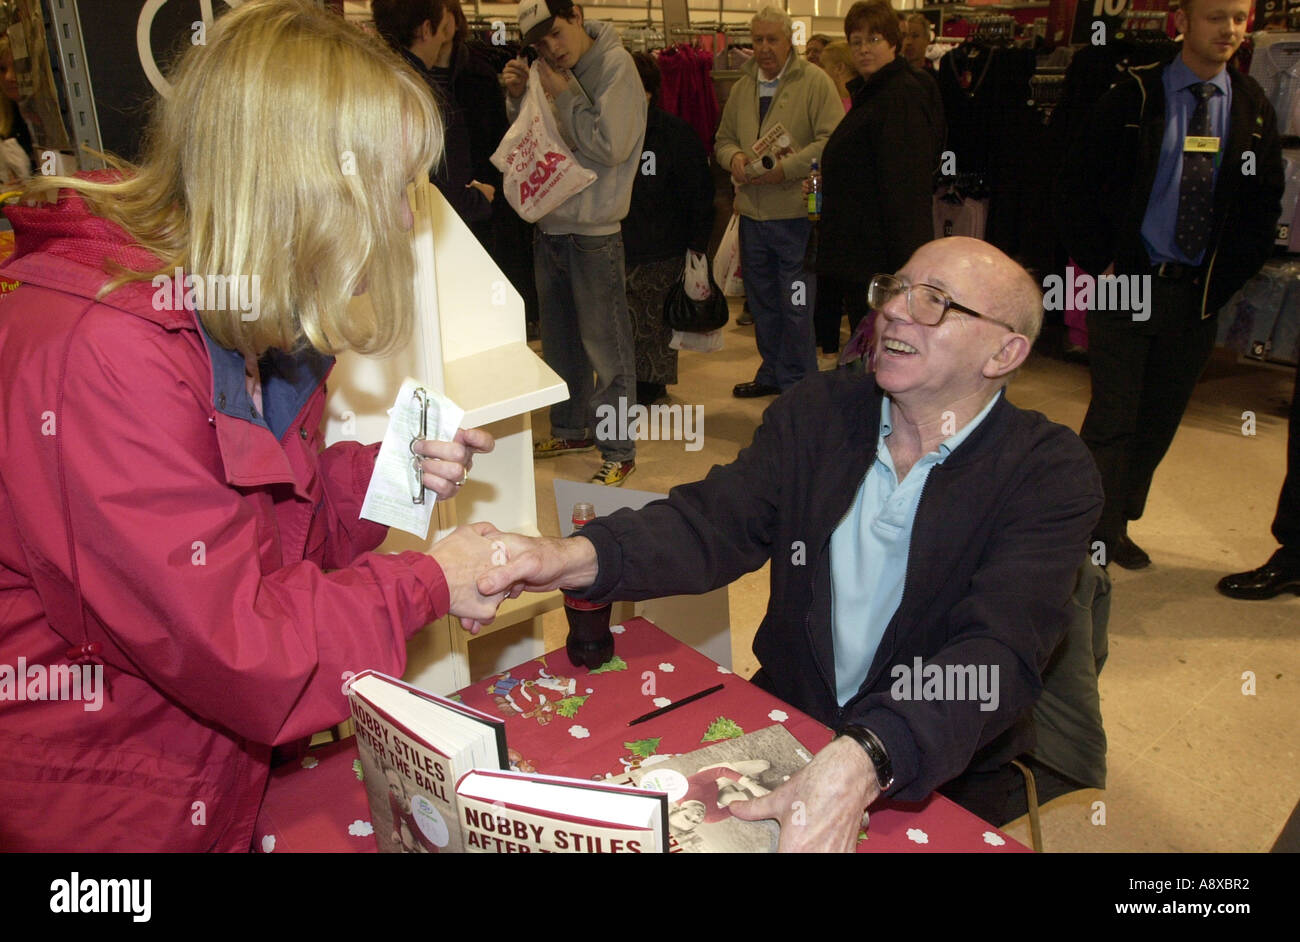 Nobby Stiles meets fans at a book signing UK - Stock Image